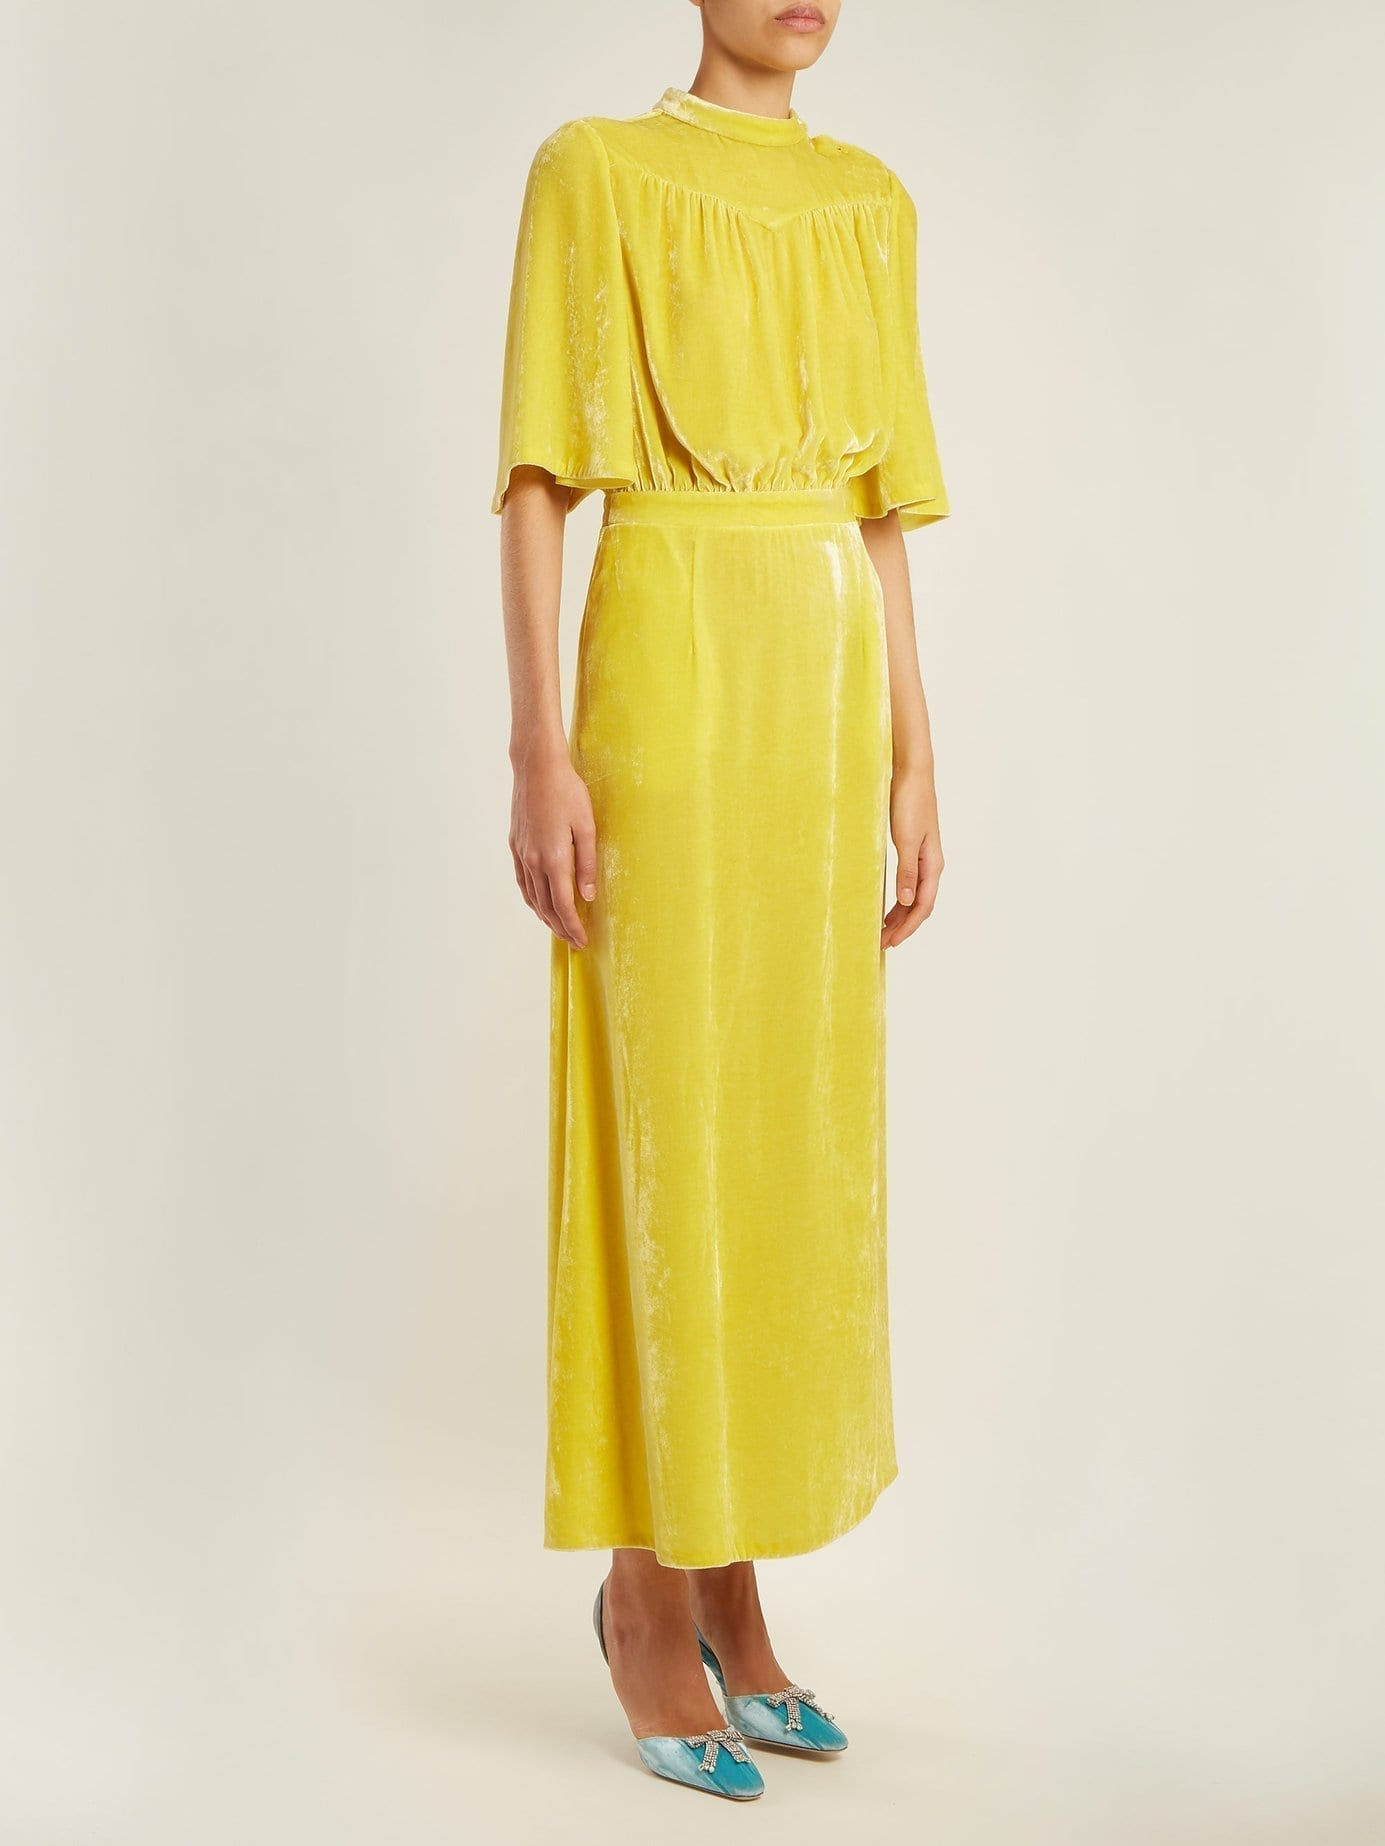 ATTICO Gathered Velvet Midi Yellow Dress